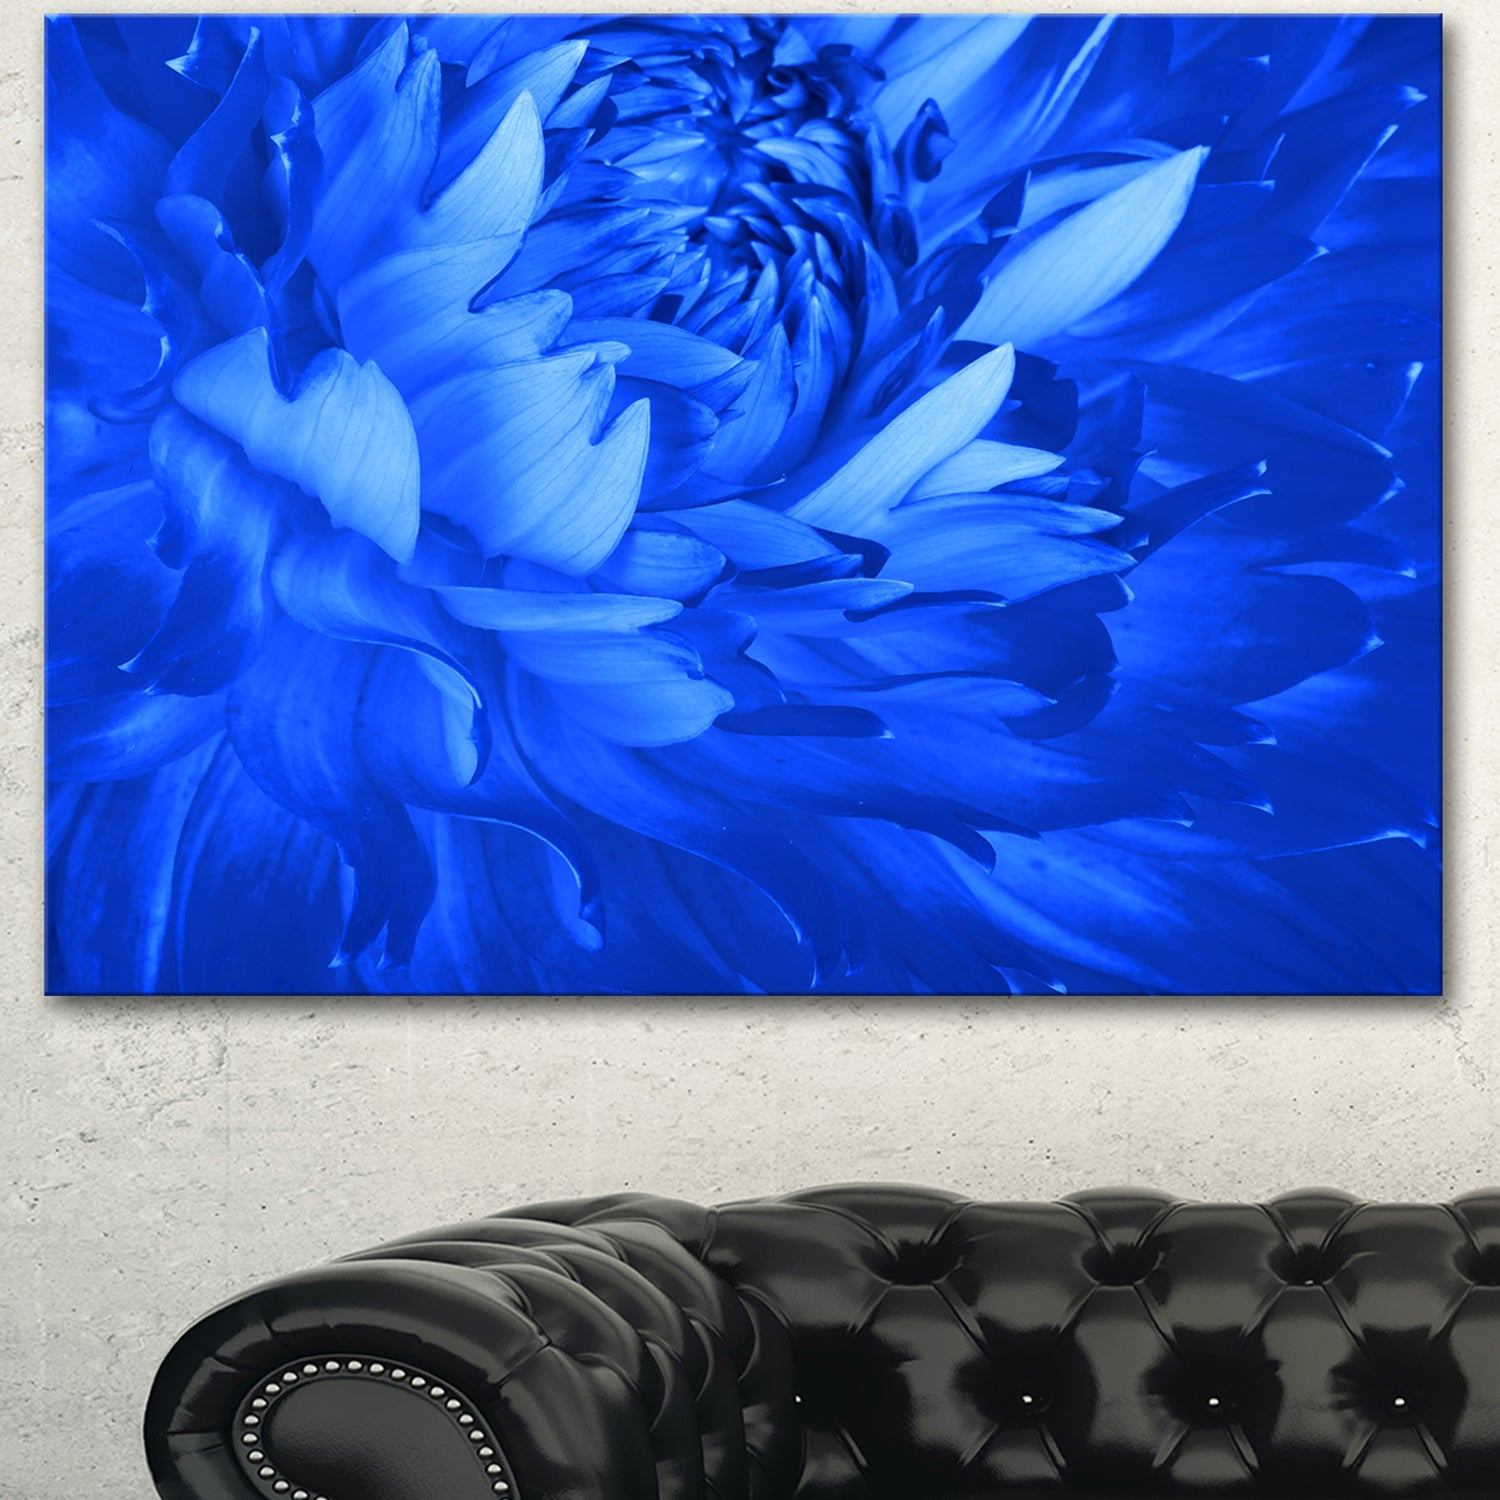 Shop designart bright blue flower petals modern floral canvas shop designart bright blue flower petals modern floral canvas wall art free shipping on orders over 45 overstock 13135010 izmirmasajfo